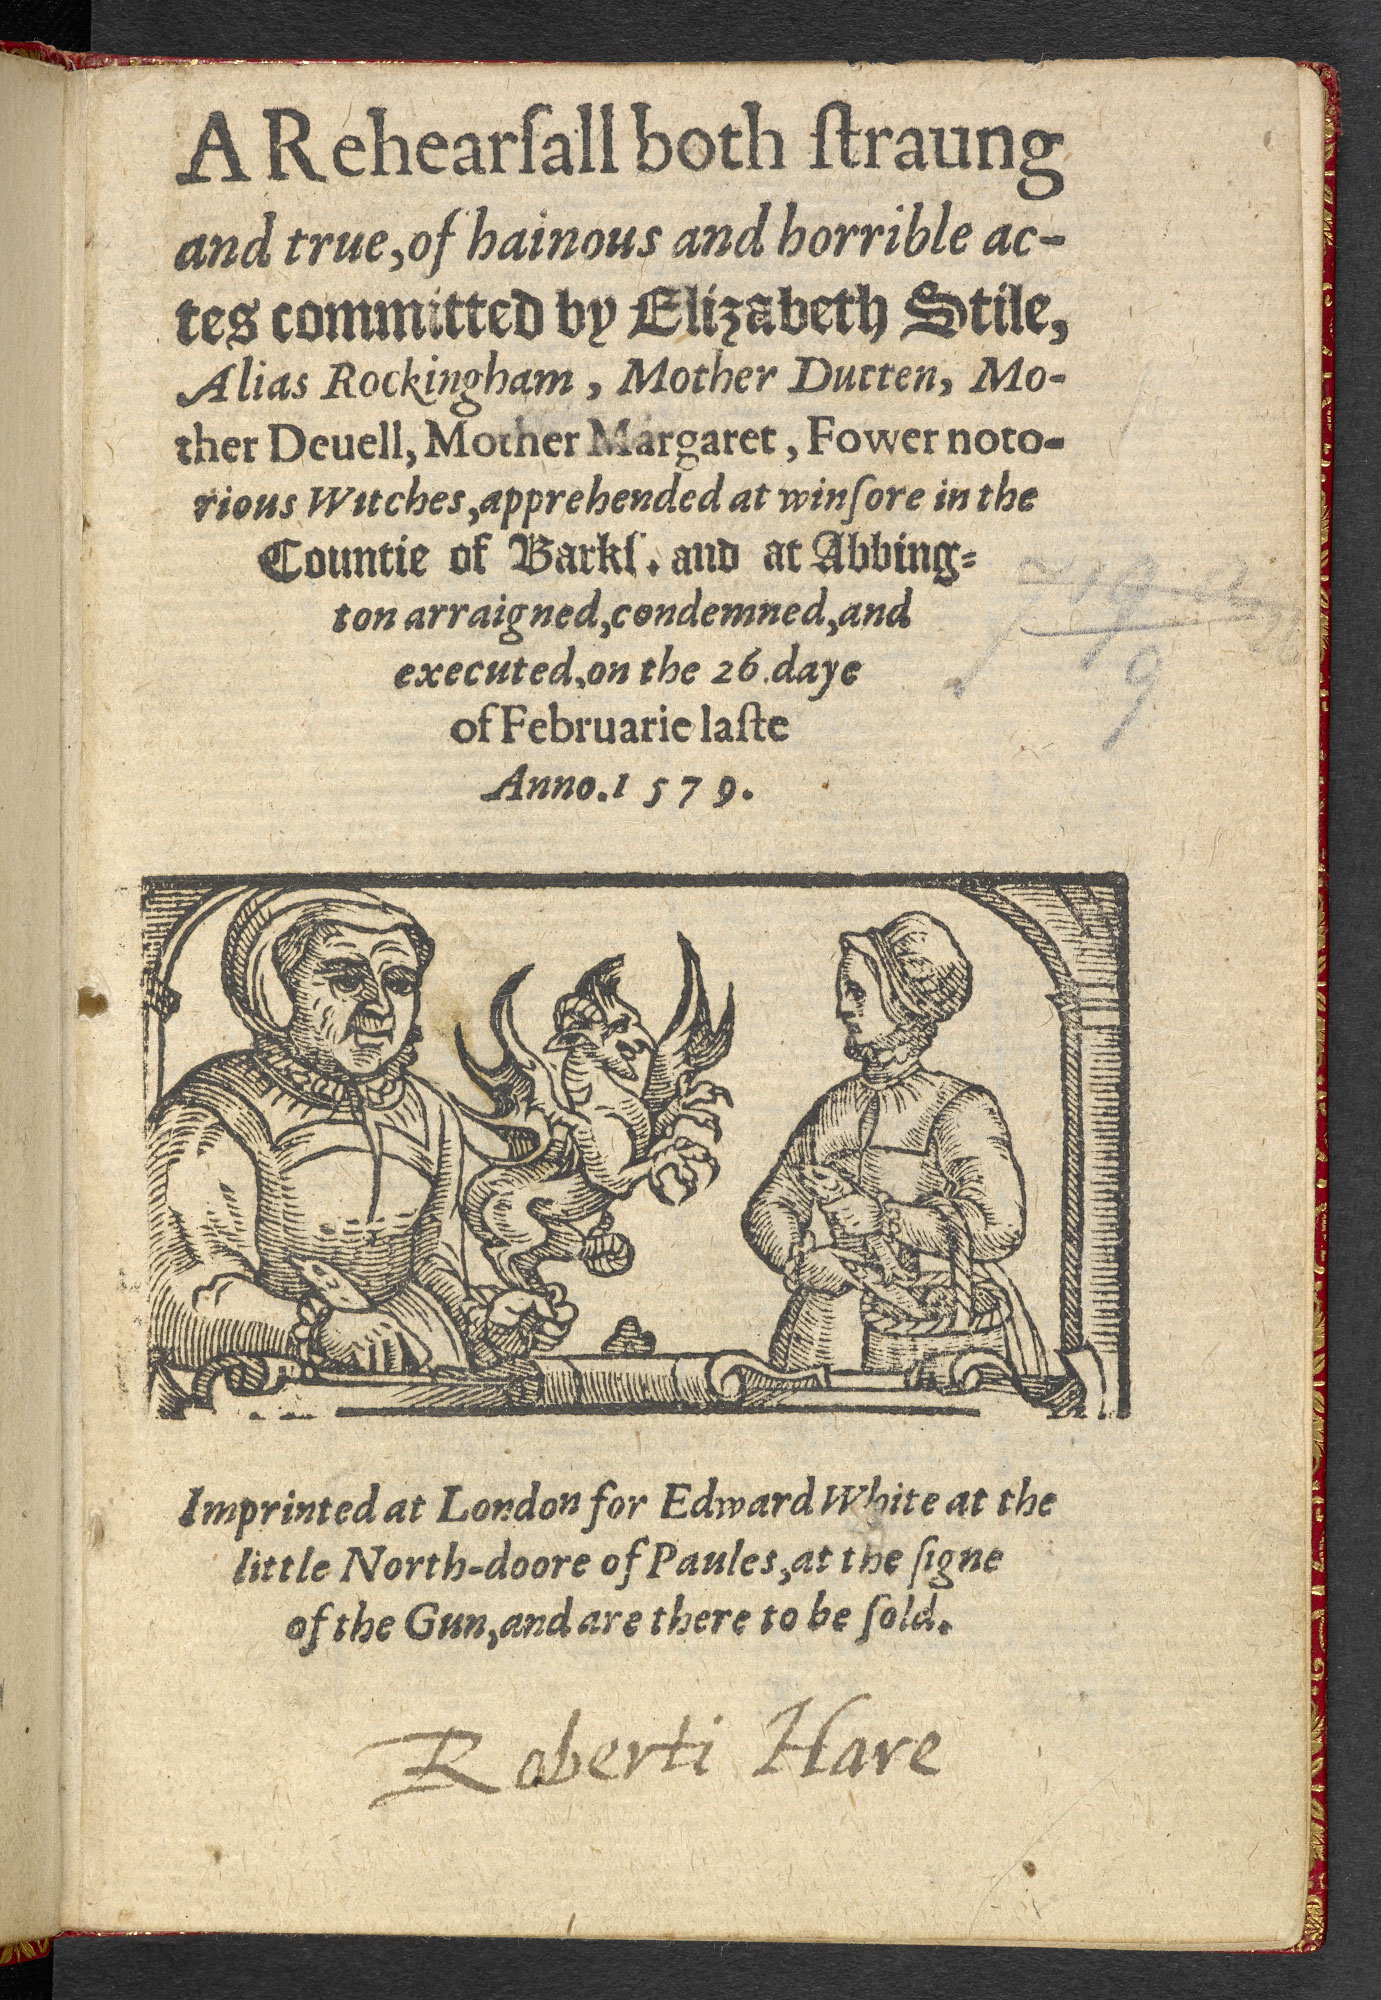 Witchcraft pamphlet: A Rehearsal both Strange and True, 1579